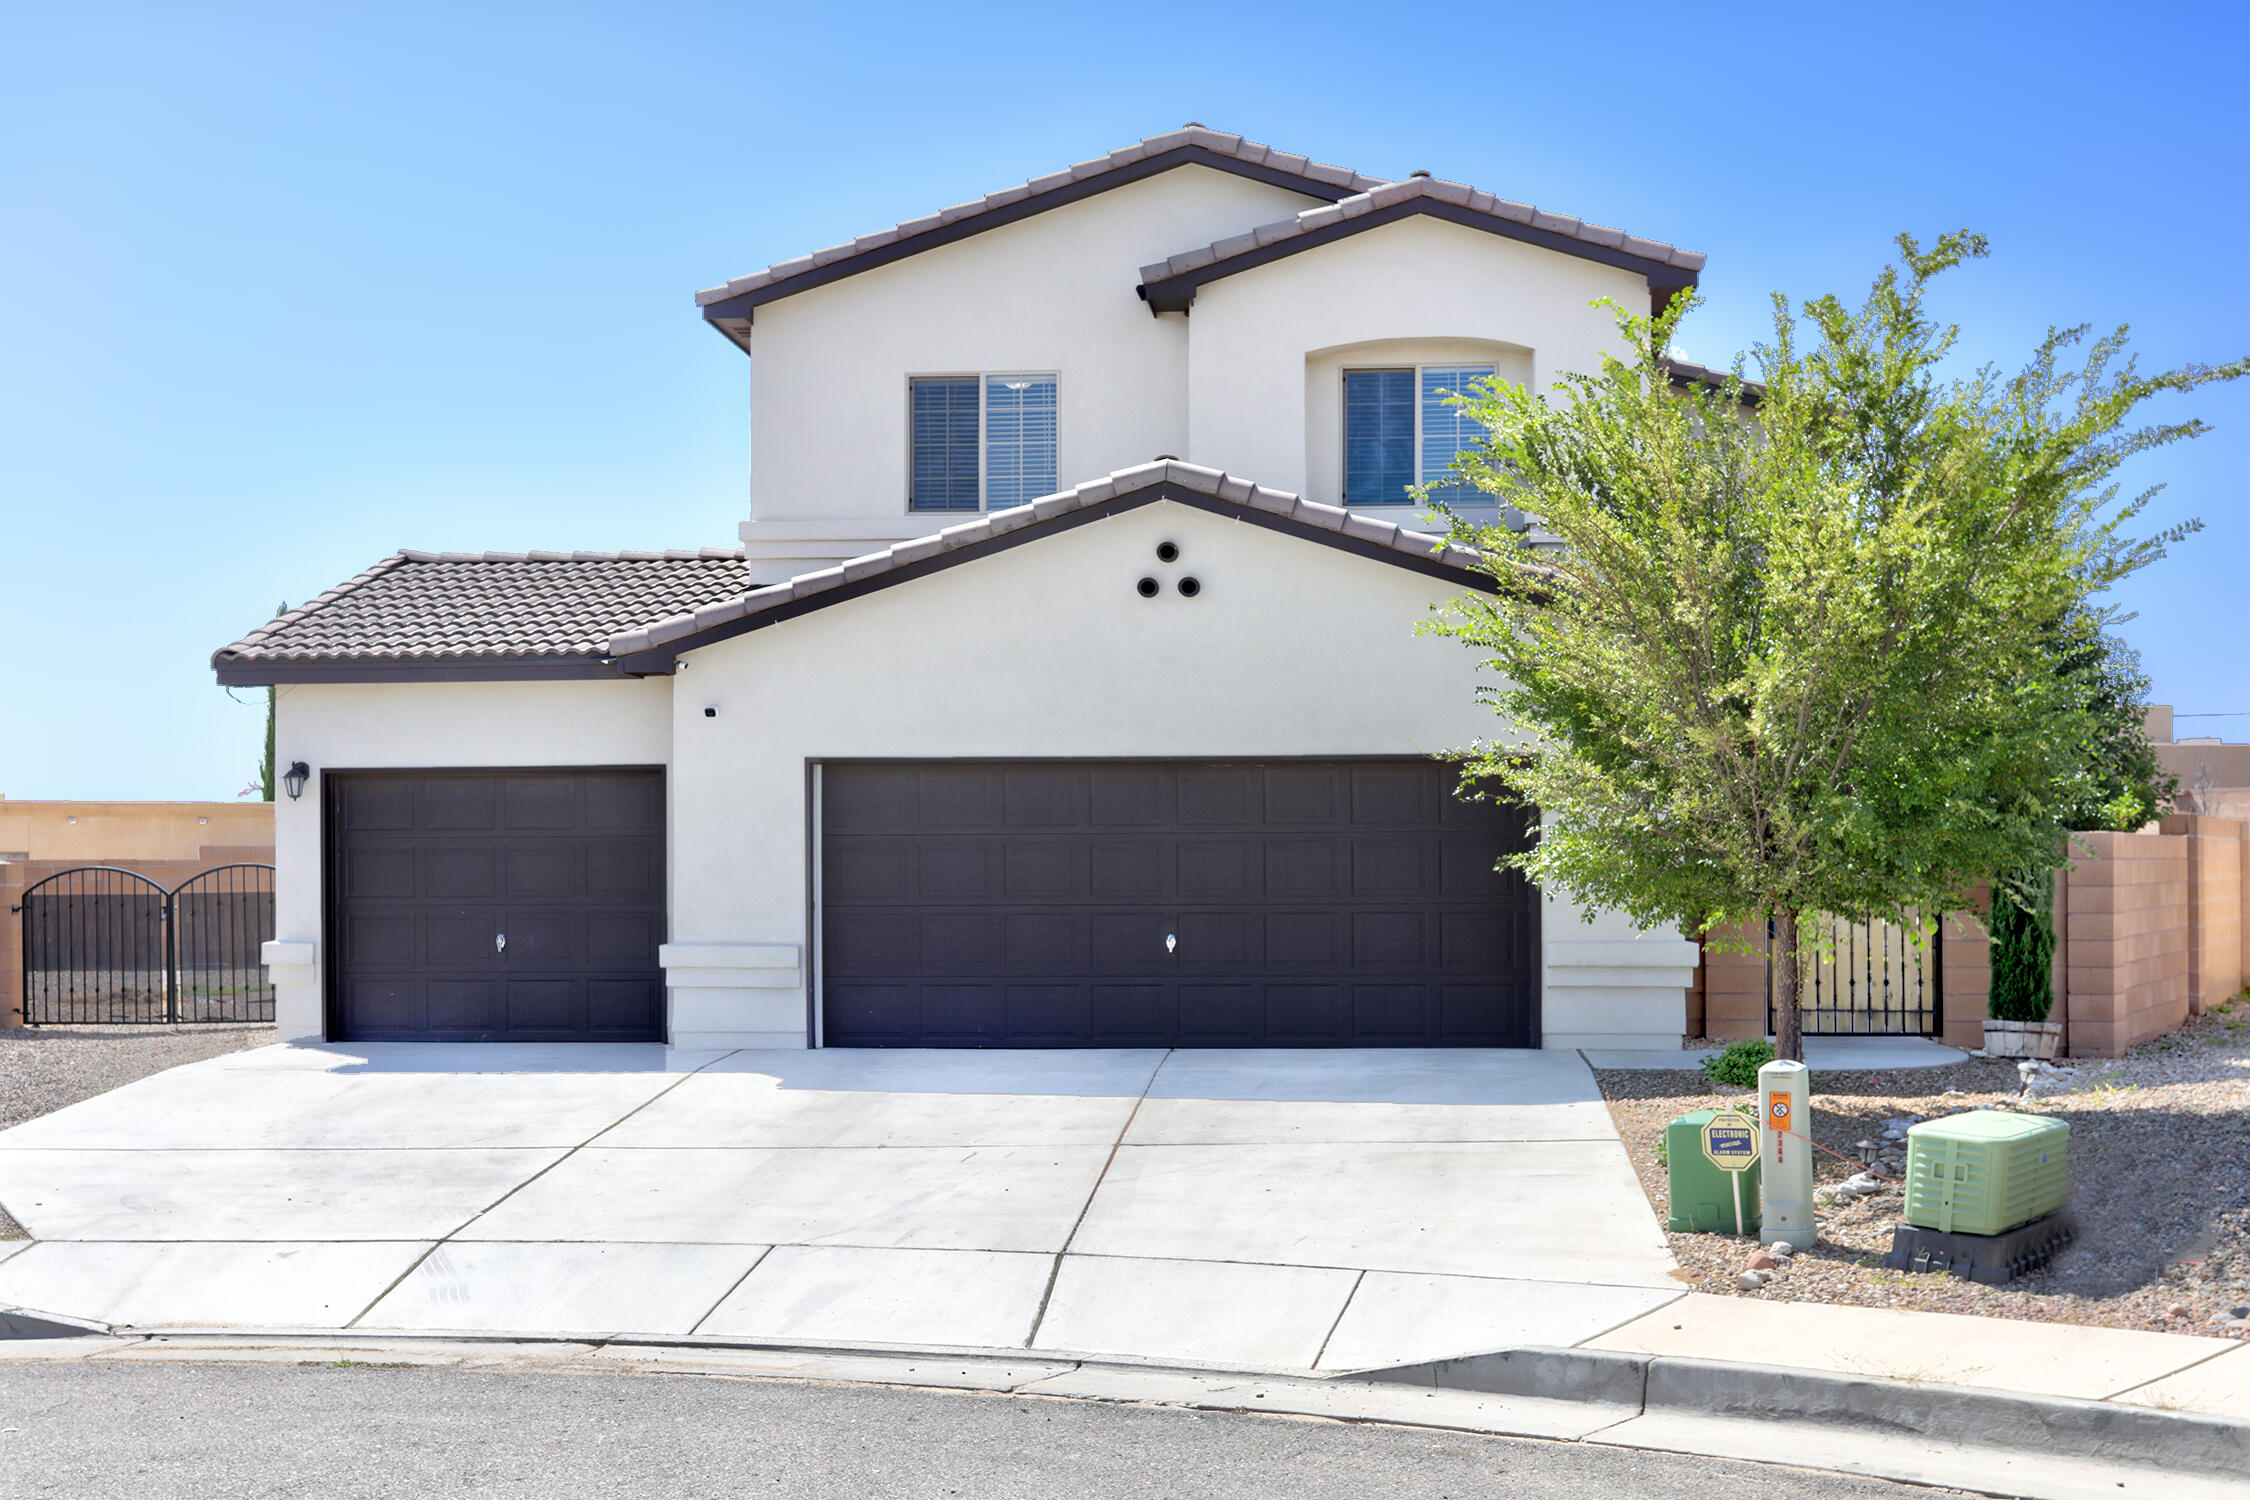 Beautiful modern family home great for entertaining inside and out complete with a backyard oasis. Enjoy beautiful views of the Sandias while gathered around the beautiful stone firepit. Family feast are fun to prepare with your beautifully updated kitchen with gorgeous granite counter tops. Come see the quality of life with all your new home has to offer.